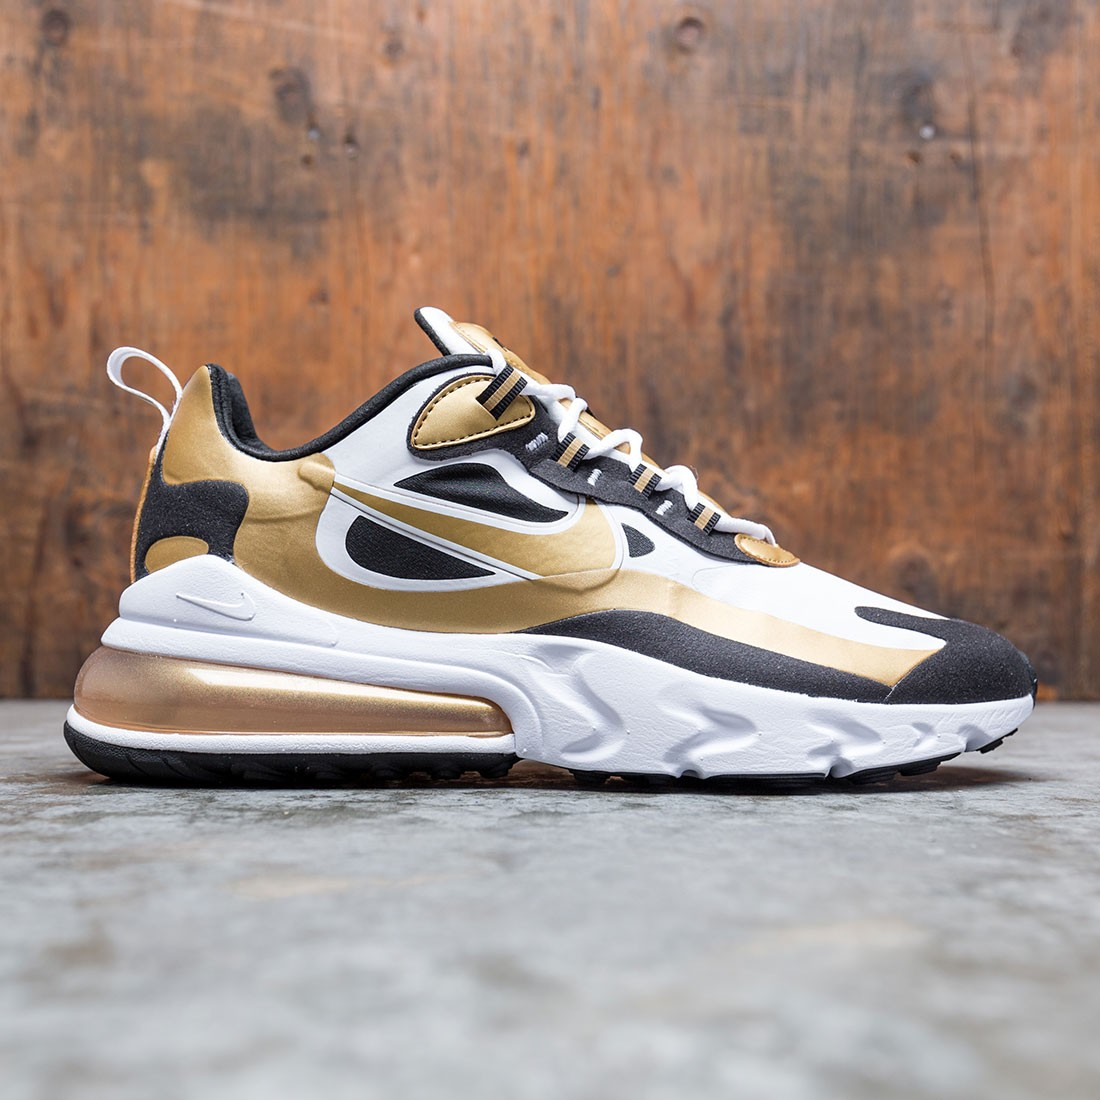 Nike Men Air Max 270 React White Metallic Gold Black